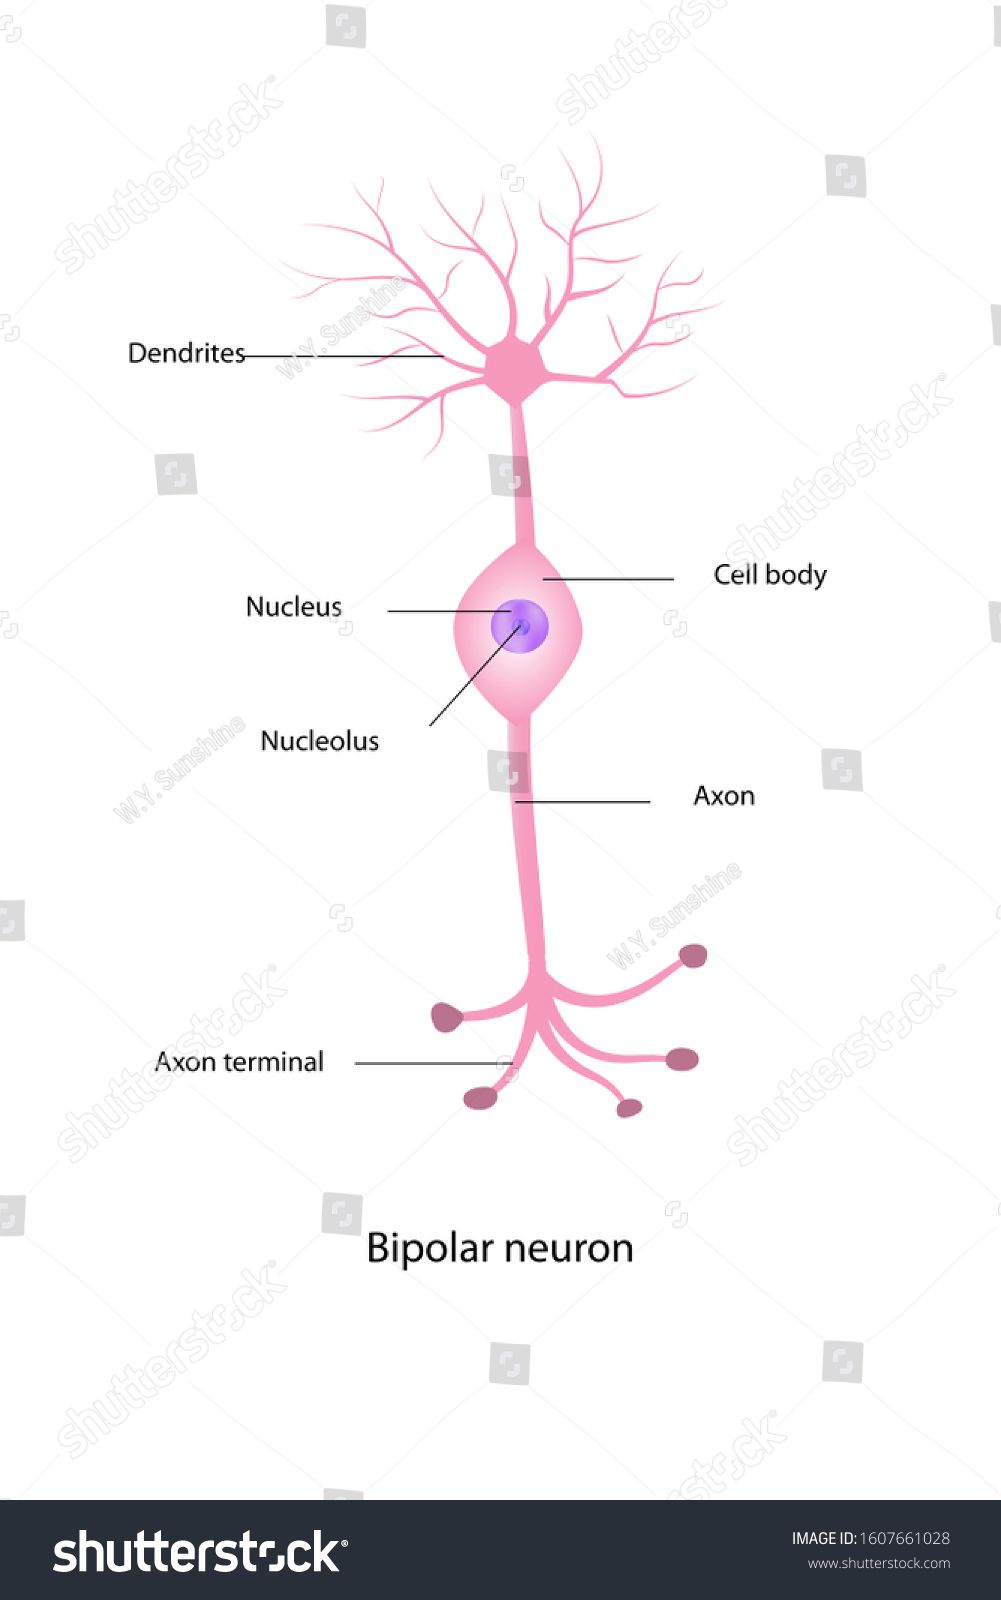 The Education Chart Of Nerve Cell Anatomy Shows Cell Body Axon Dendrite And Motor End Plate Or Sensory Organ On White Backgro In 2020 Nerve Cell Body Cells Education